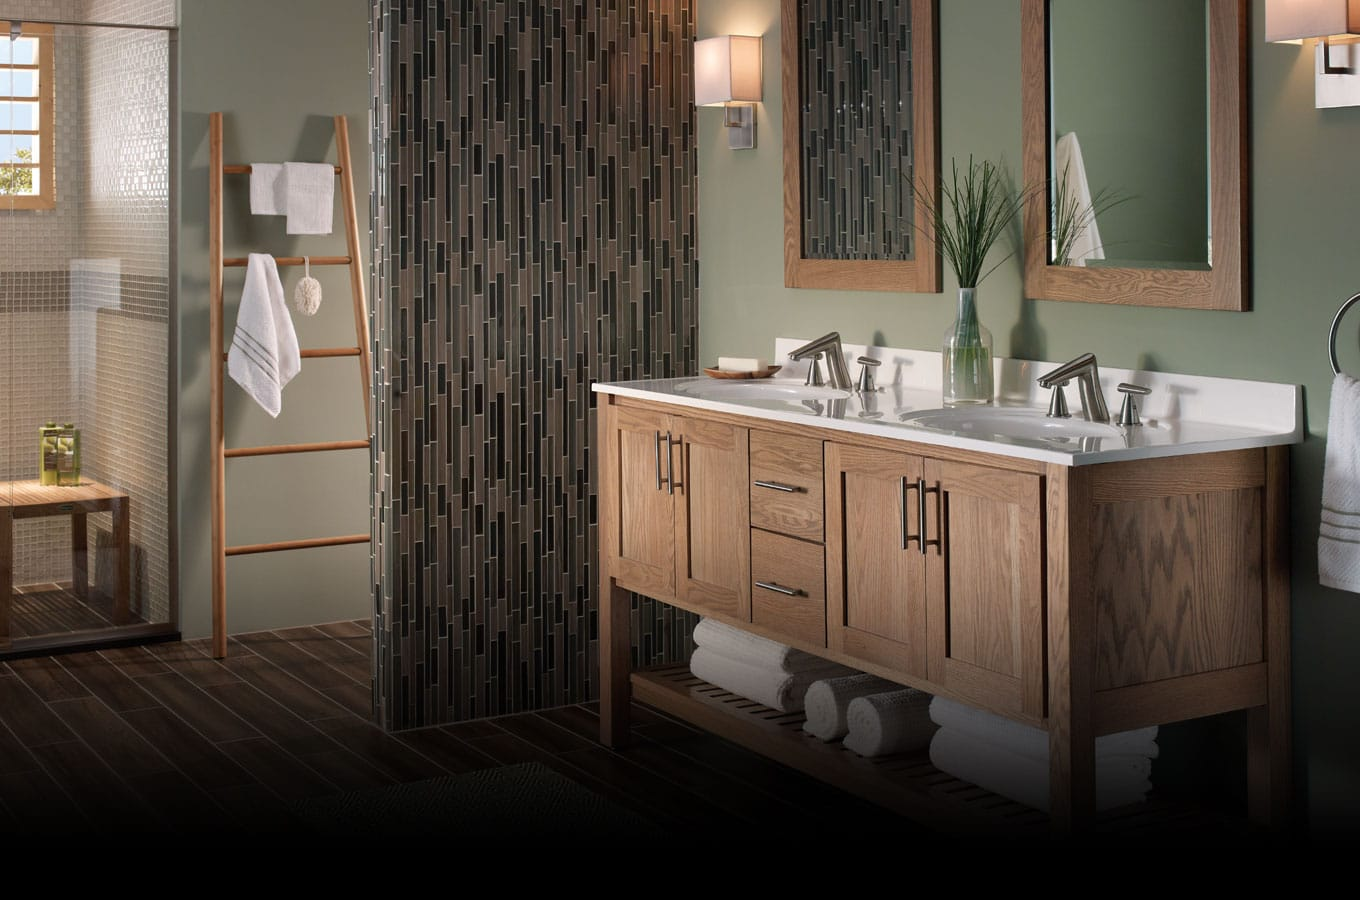 kitchen cabinets, bath vanities, vanity tops, interior & exterior